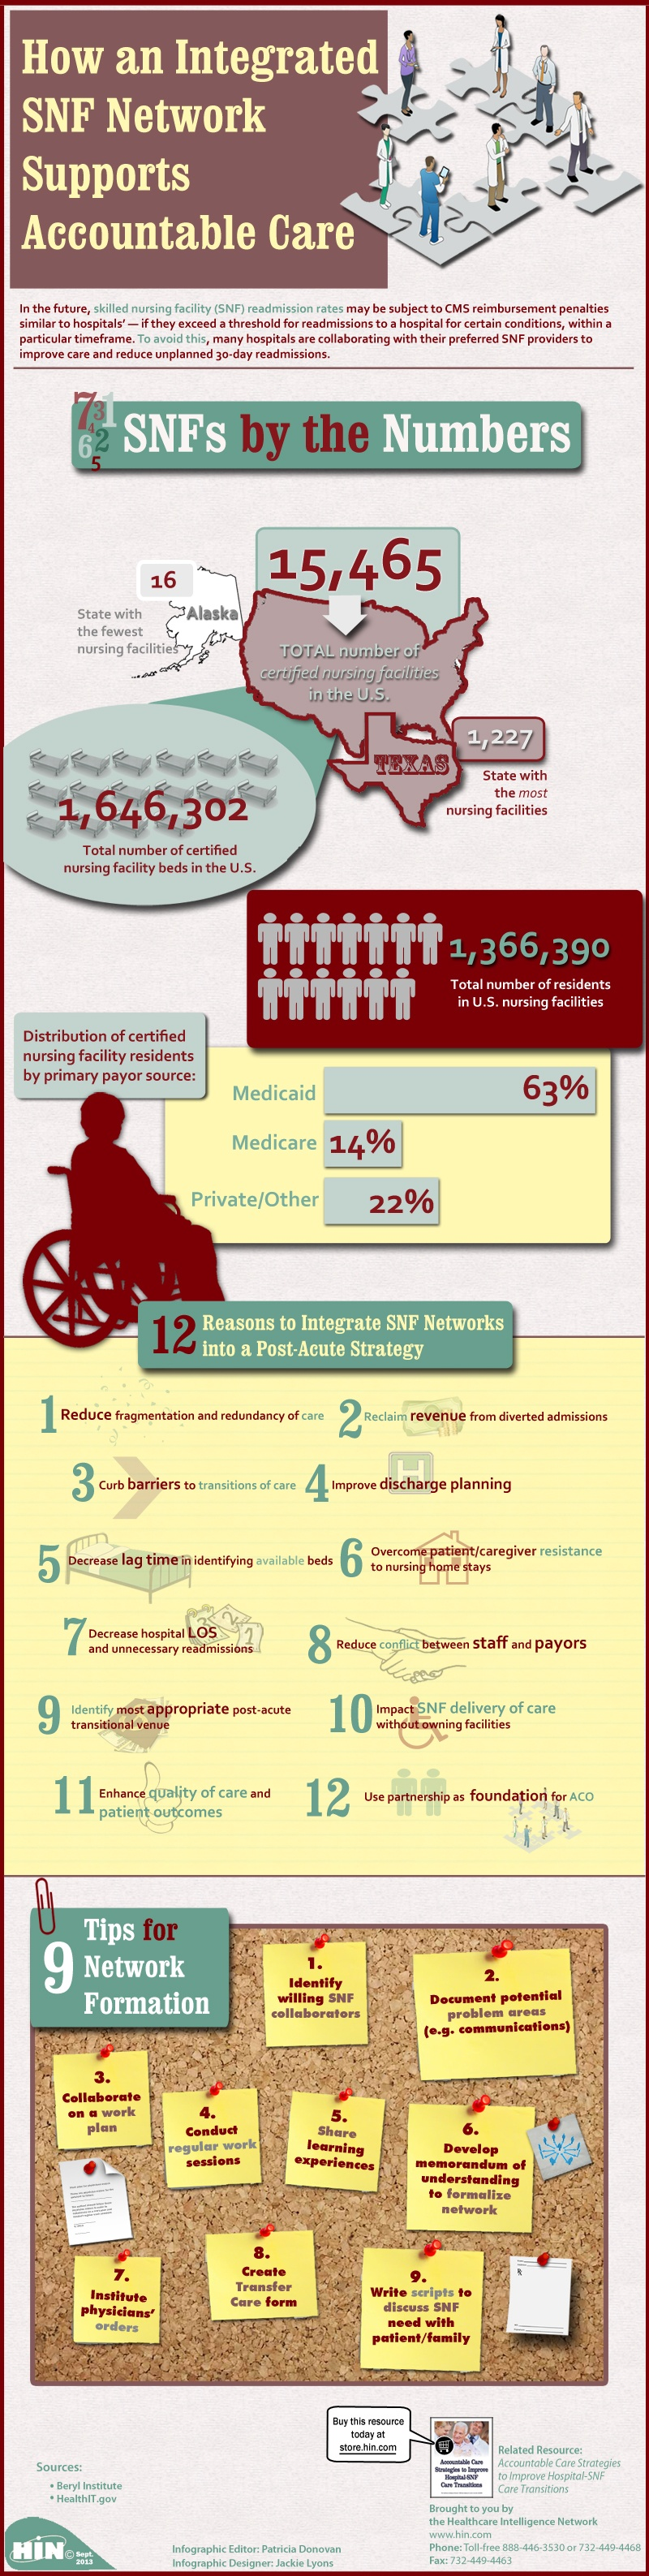 Benefits_Integrated_SNF_infographic.jpg